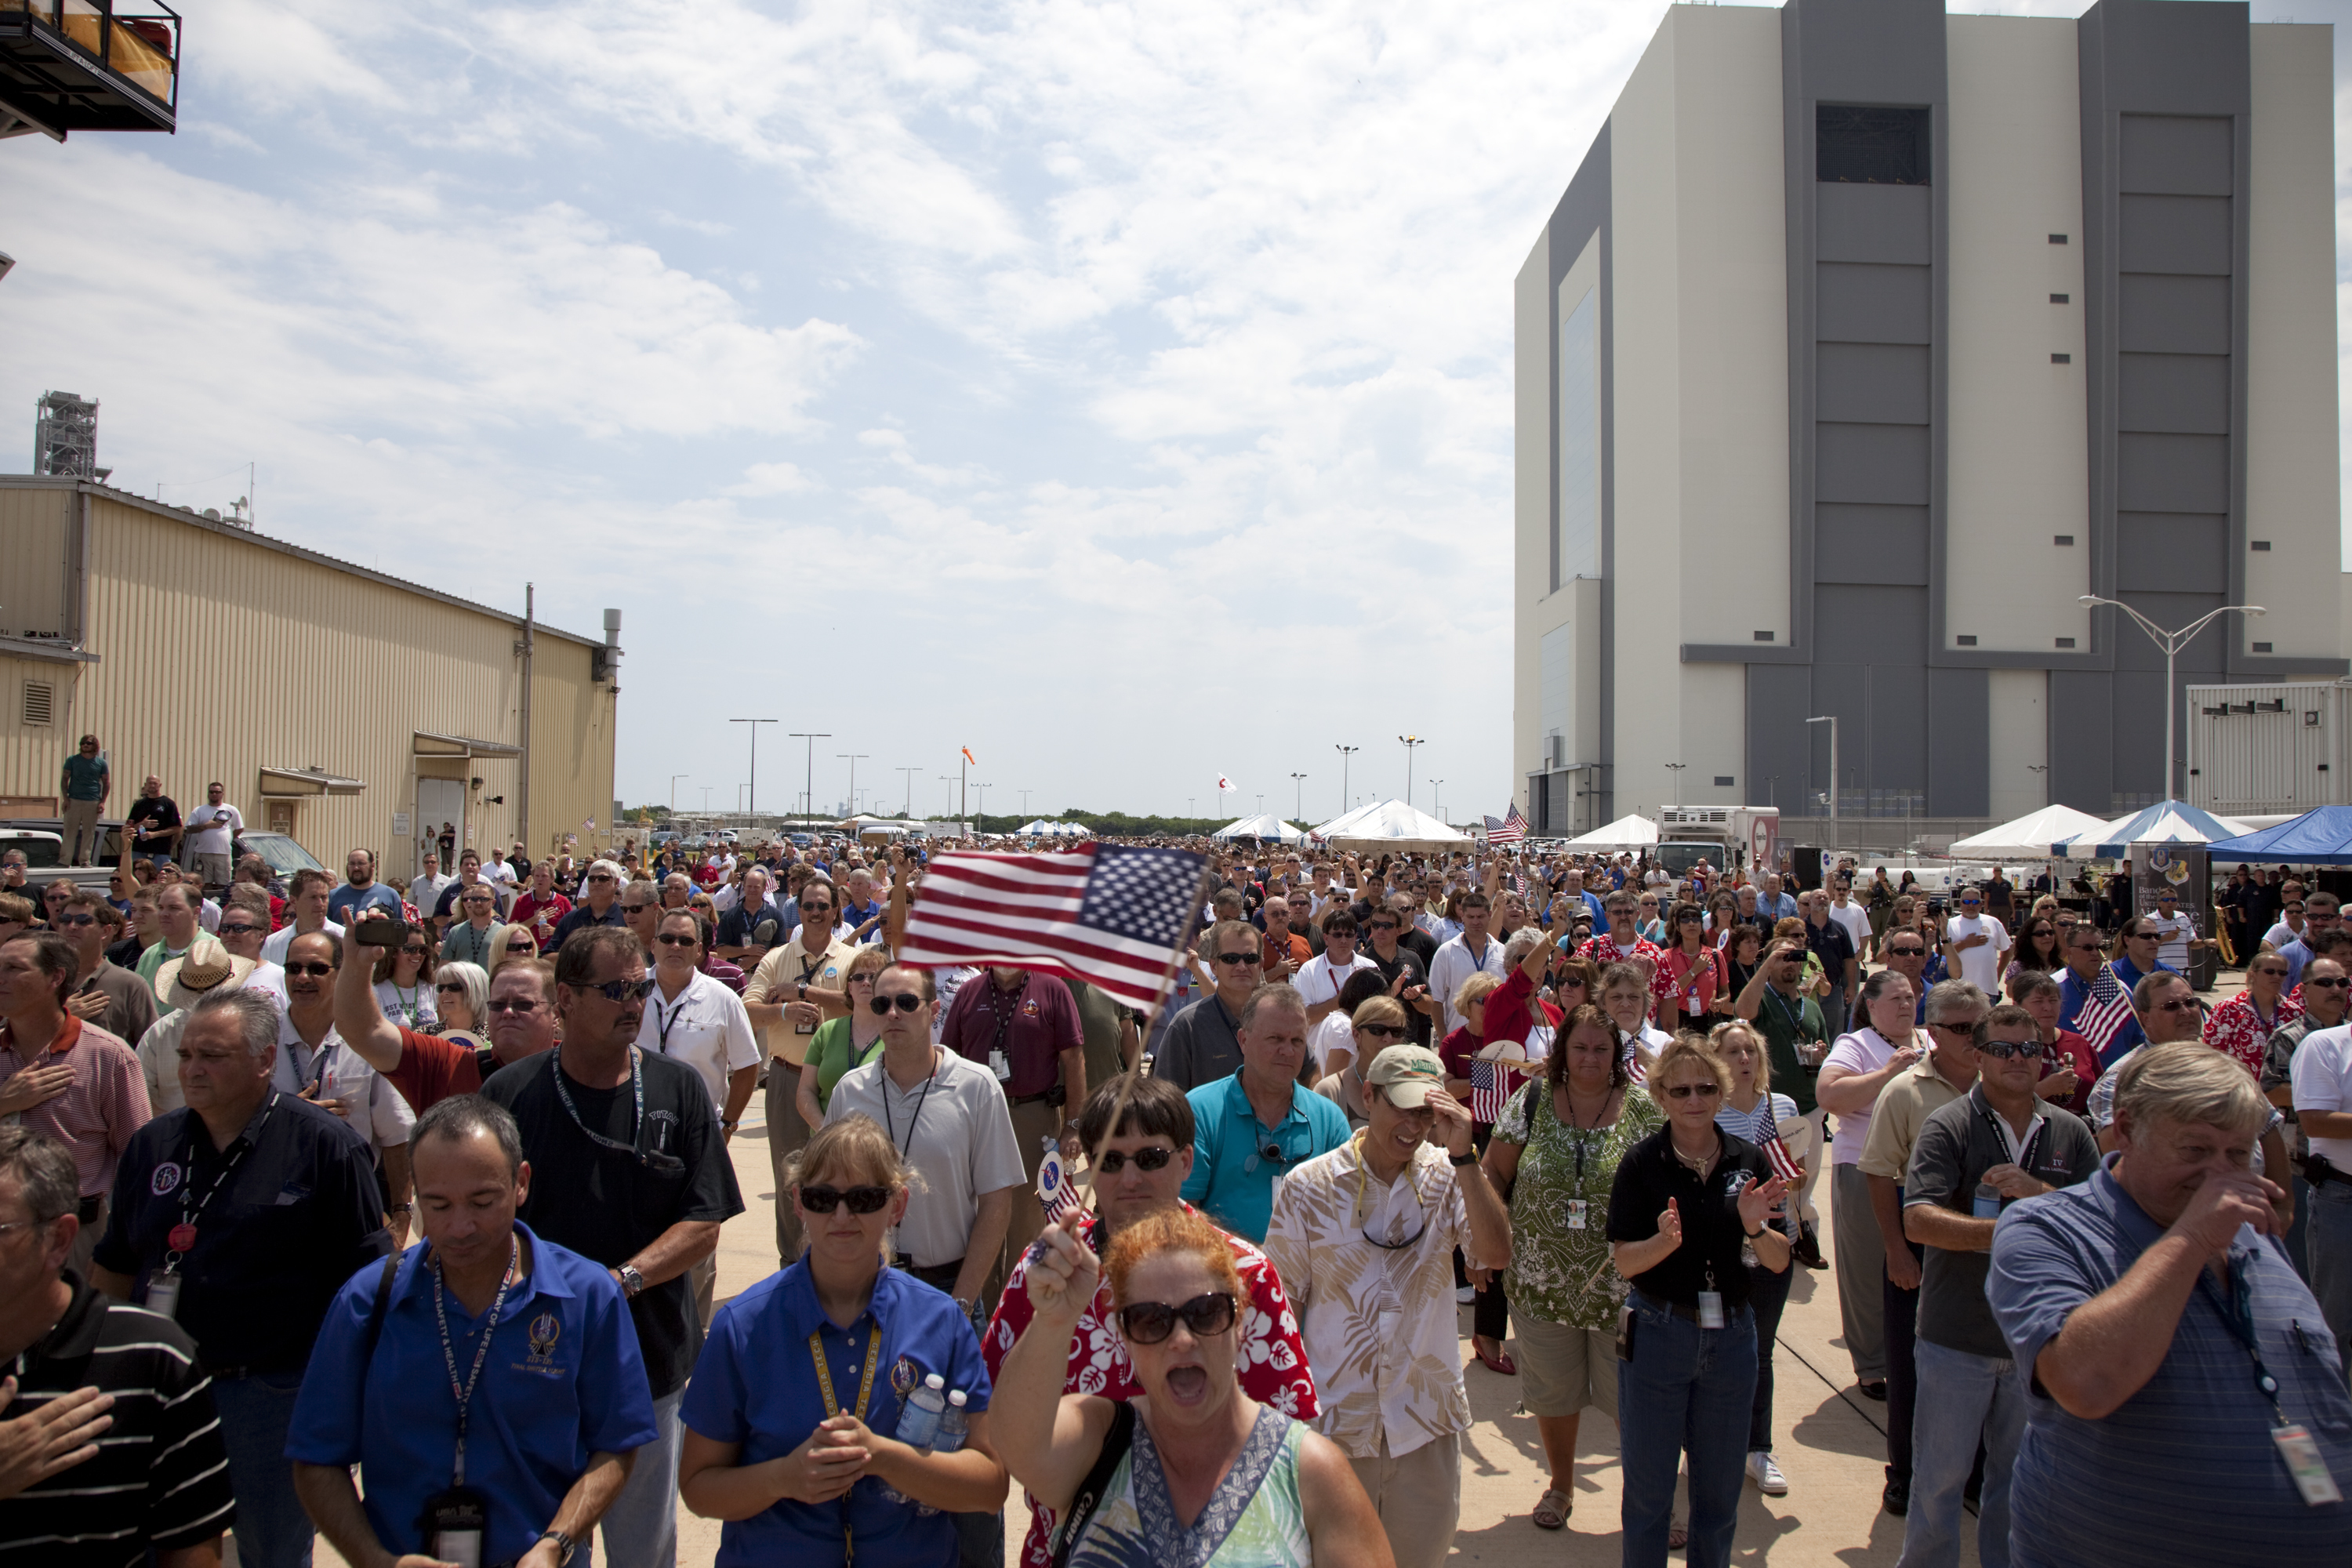 NASA's Space Shuttle Workers at Employee Appreciation Event